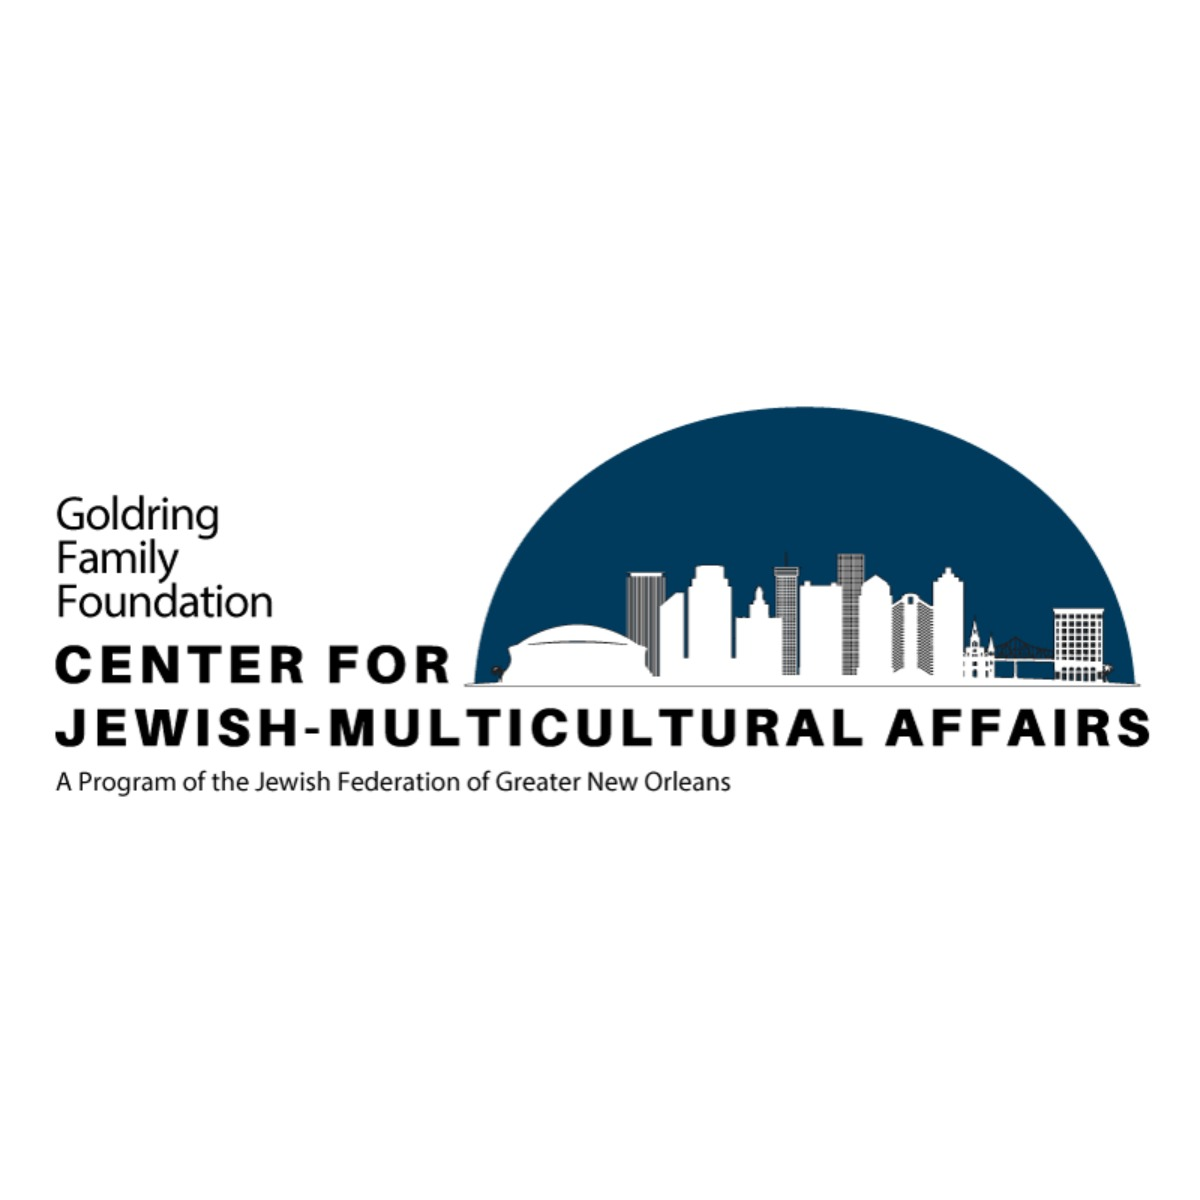 Goldring Family Foundation Center for Jewish-Multicultural Affairs